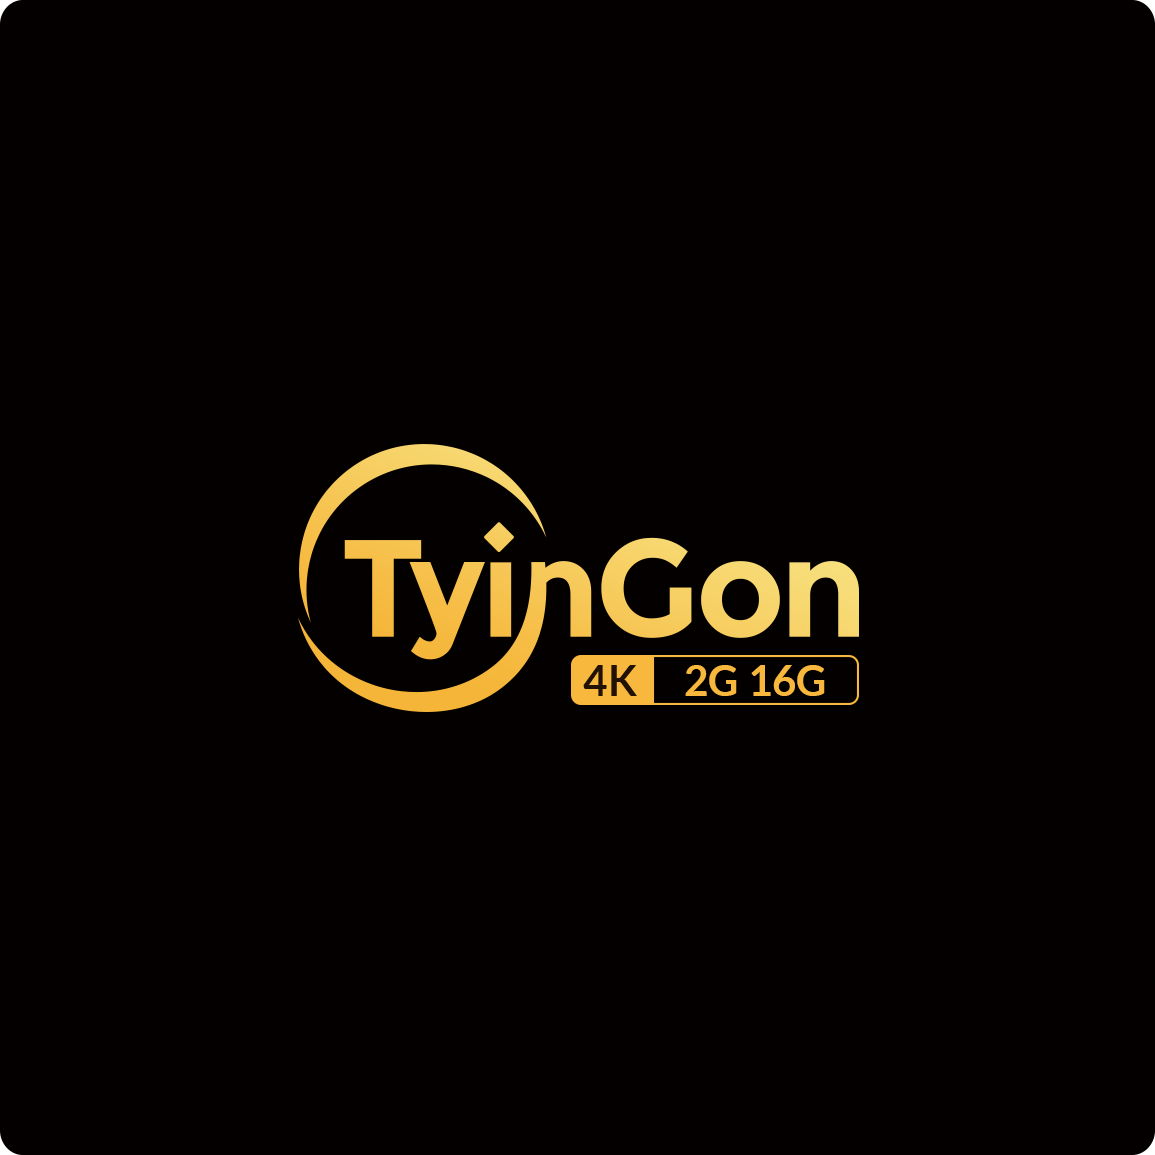 Sp TyinGon Android TV box 4K 2G 16G player - Audio și video acasă - Fotografie 1